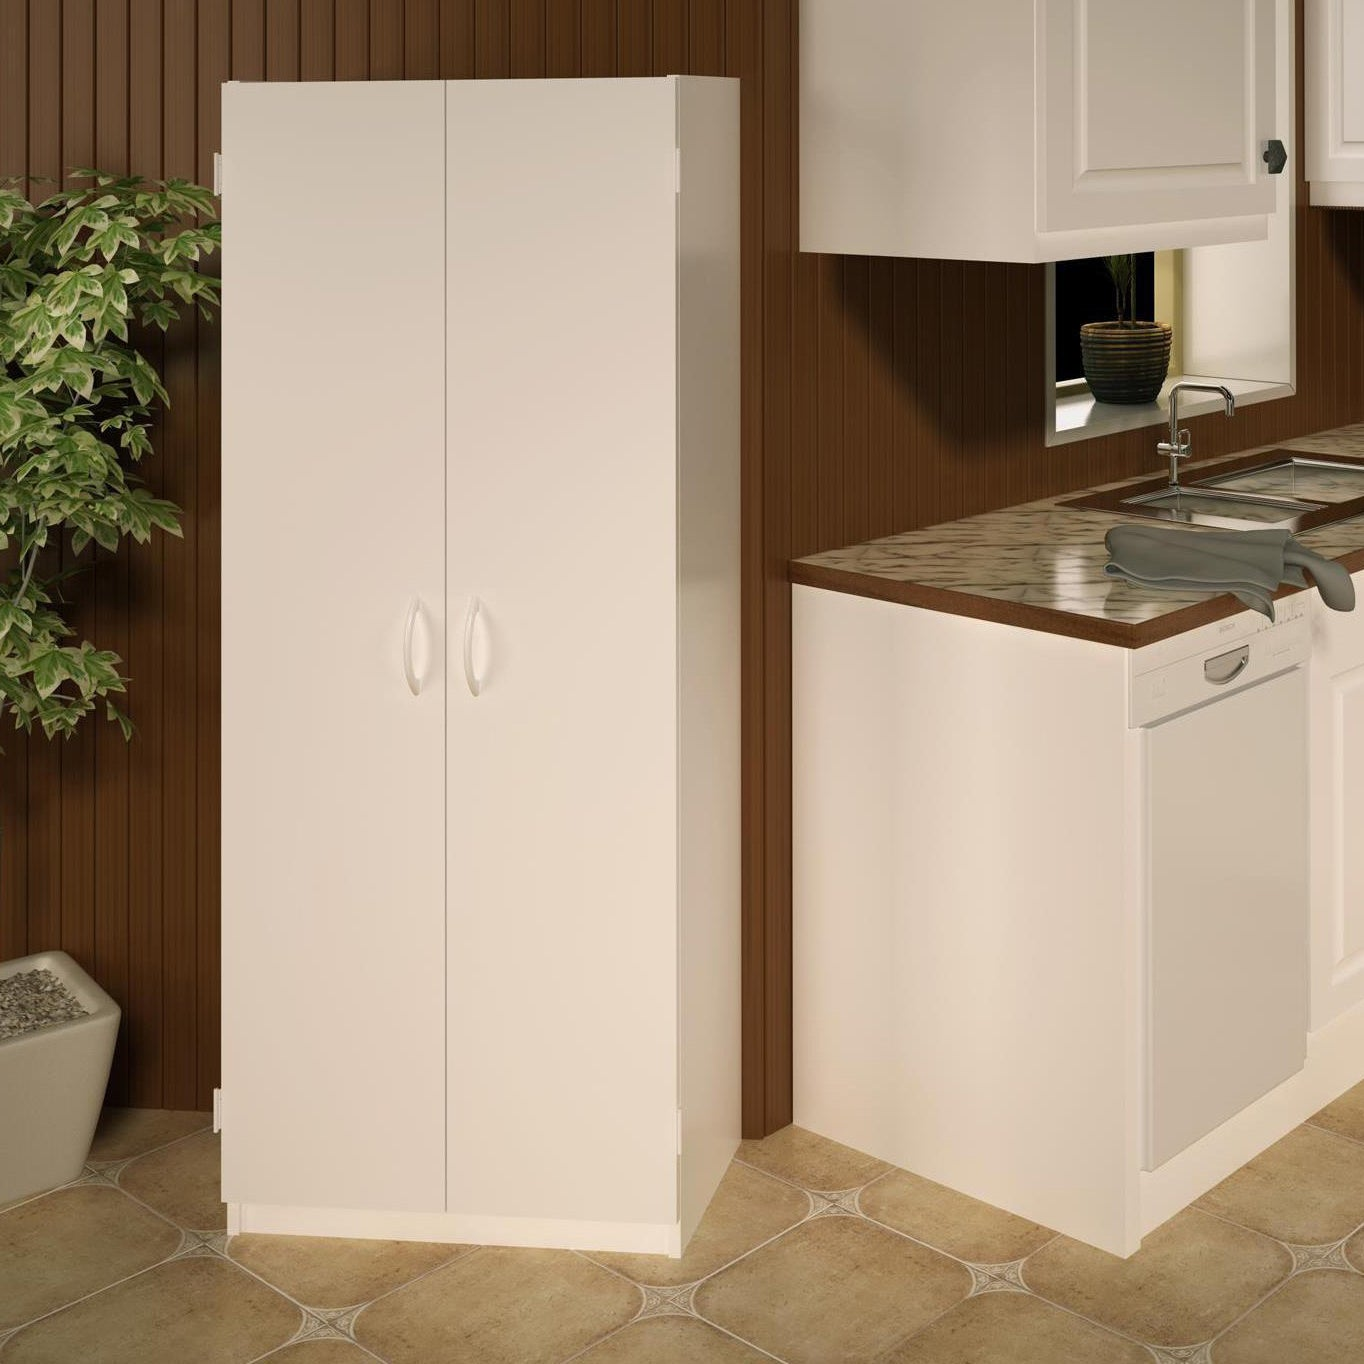 Ameriwood Home Flynn White Wood 24 Inch Double Door Kitchen Pantry Cabinet